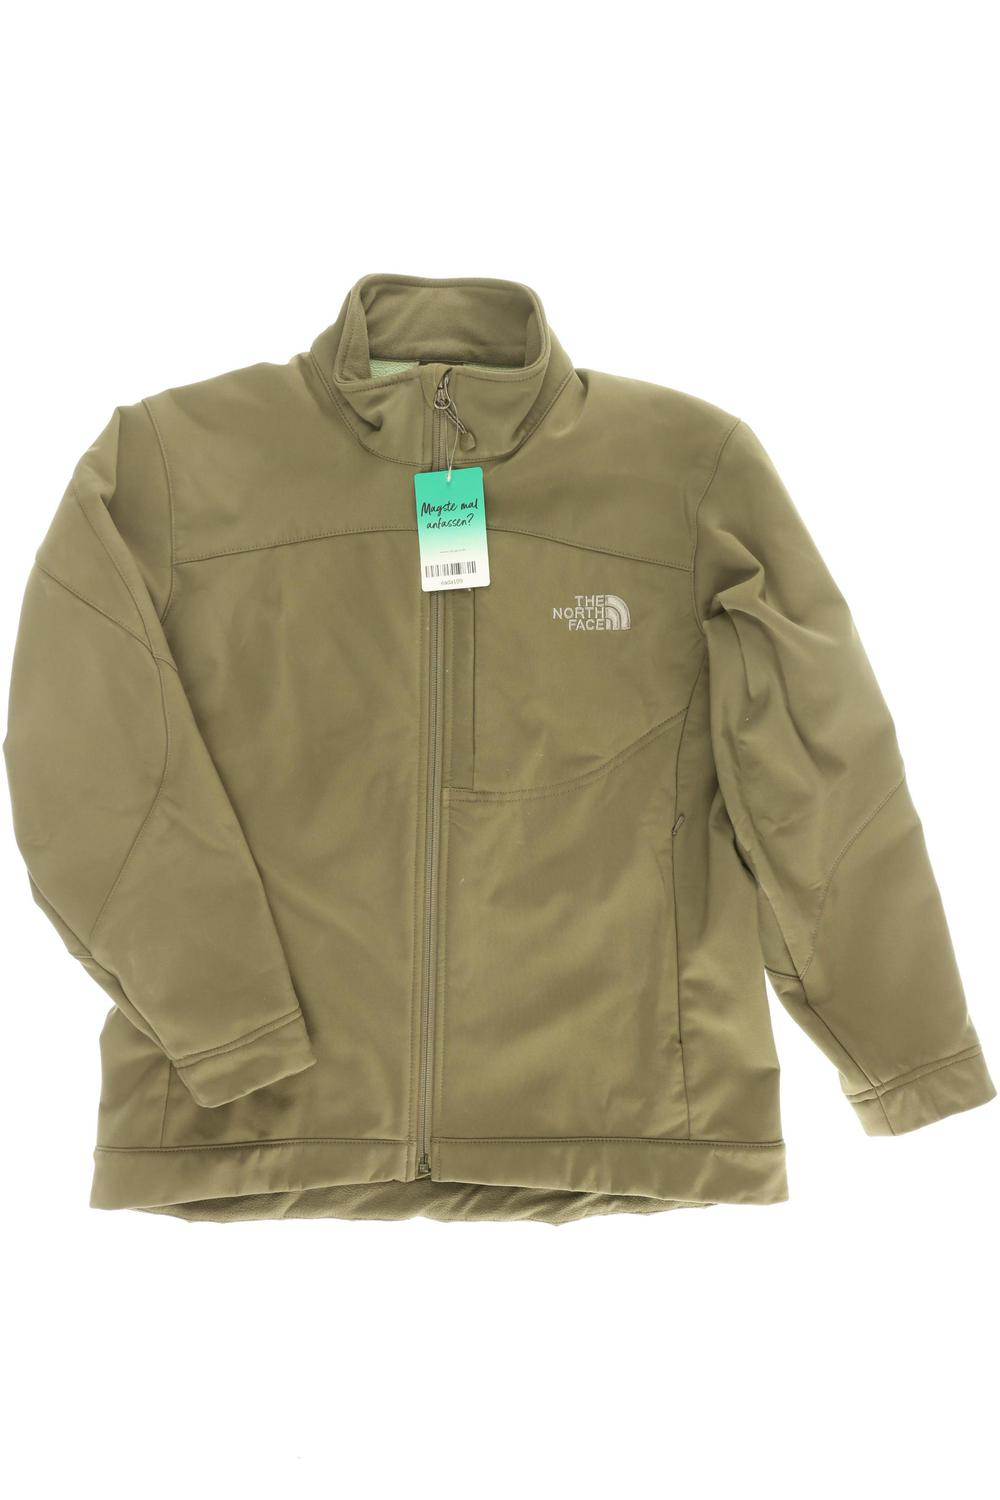 sale retailer 5216a 09410 ubup | The North Face Damen Jacke INT XL Second Hand kaufen